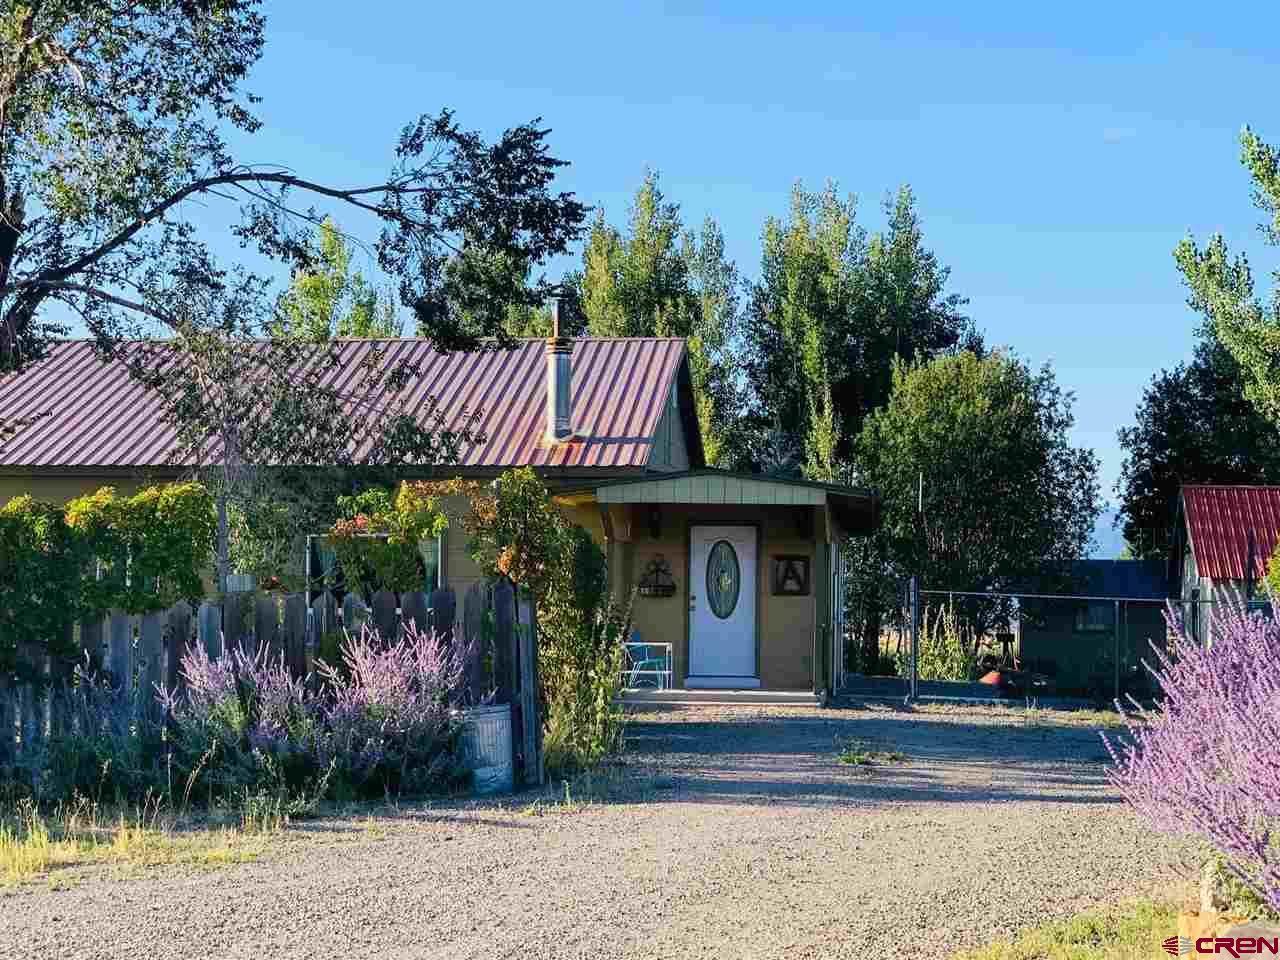 Wonderfully loved home on over 4.58+- acres with amazing views all around! Horses will love it!! Quality Hay Field and nice set up and fencing for Horses, Cattle or ??? Garden space already established with plenty of storage for all your tools! Great pasture for your critters with an updated shelter on the north field, irrigation system set up and ready for you to take over! Home has newer siding, energy efficient windows and interior painting! Geothermal was installed in 2010! Great inviting entry into the home with an open concept kitchen and living room with new flooring! 360 degree views from this great piece of land! Conveniently located just minutes away from Hotchkiss and a hop, skip and a jump to Paonia or Crawford!  Homes is on a quite country road but really close to all amenities.